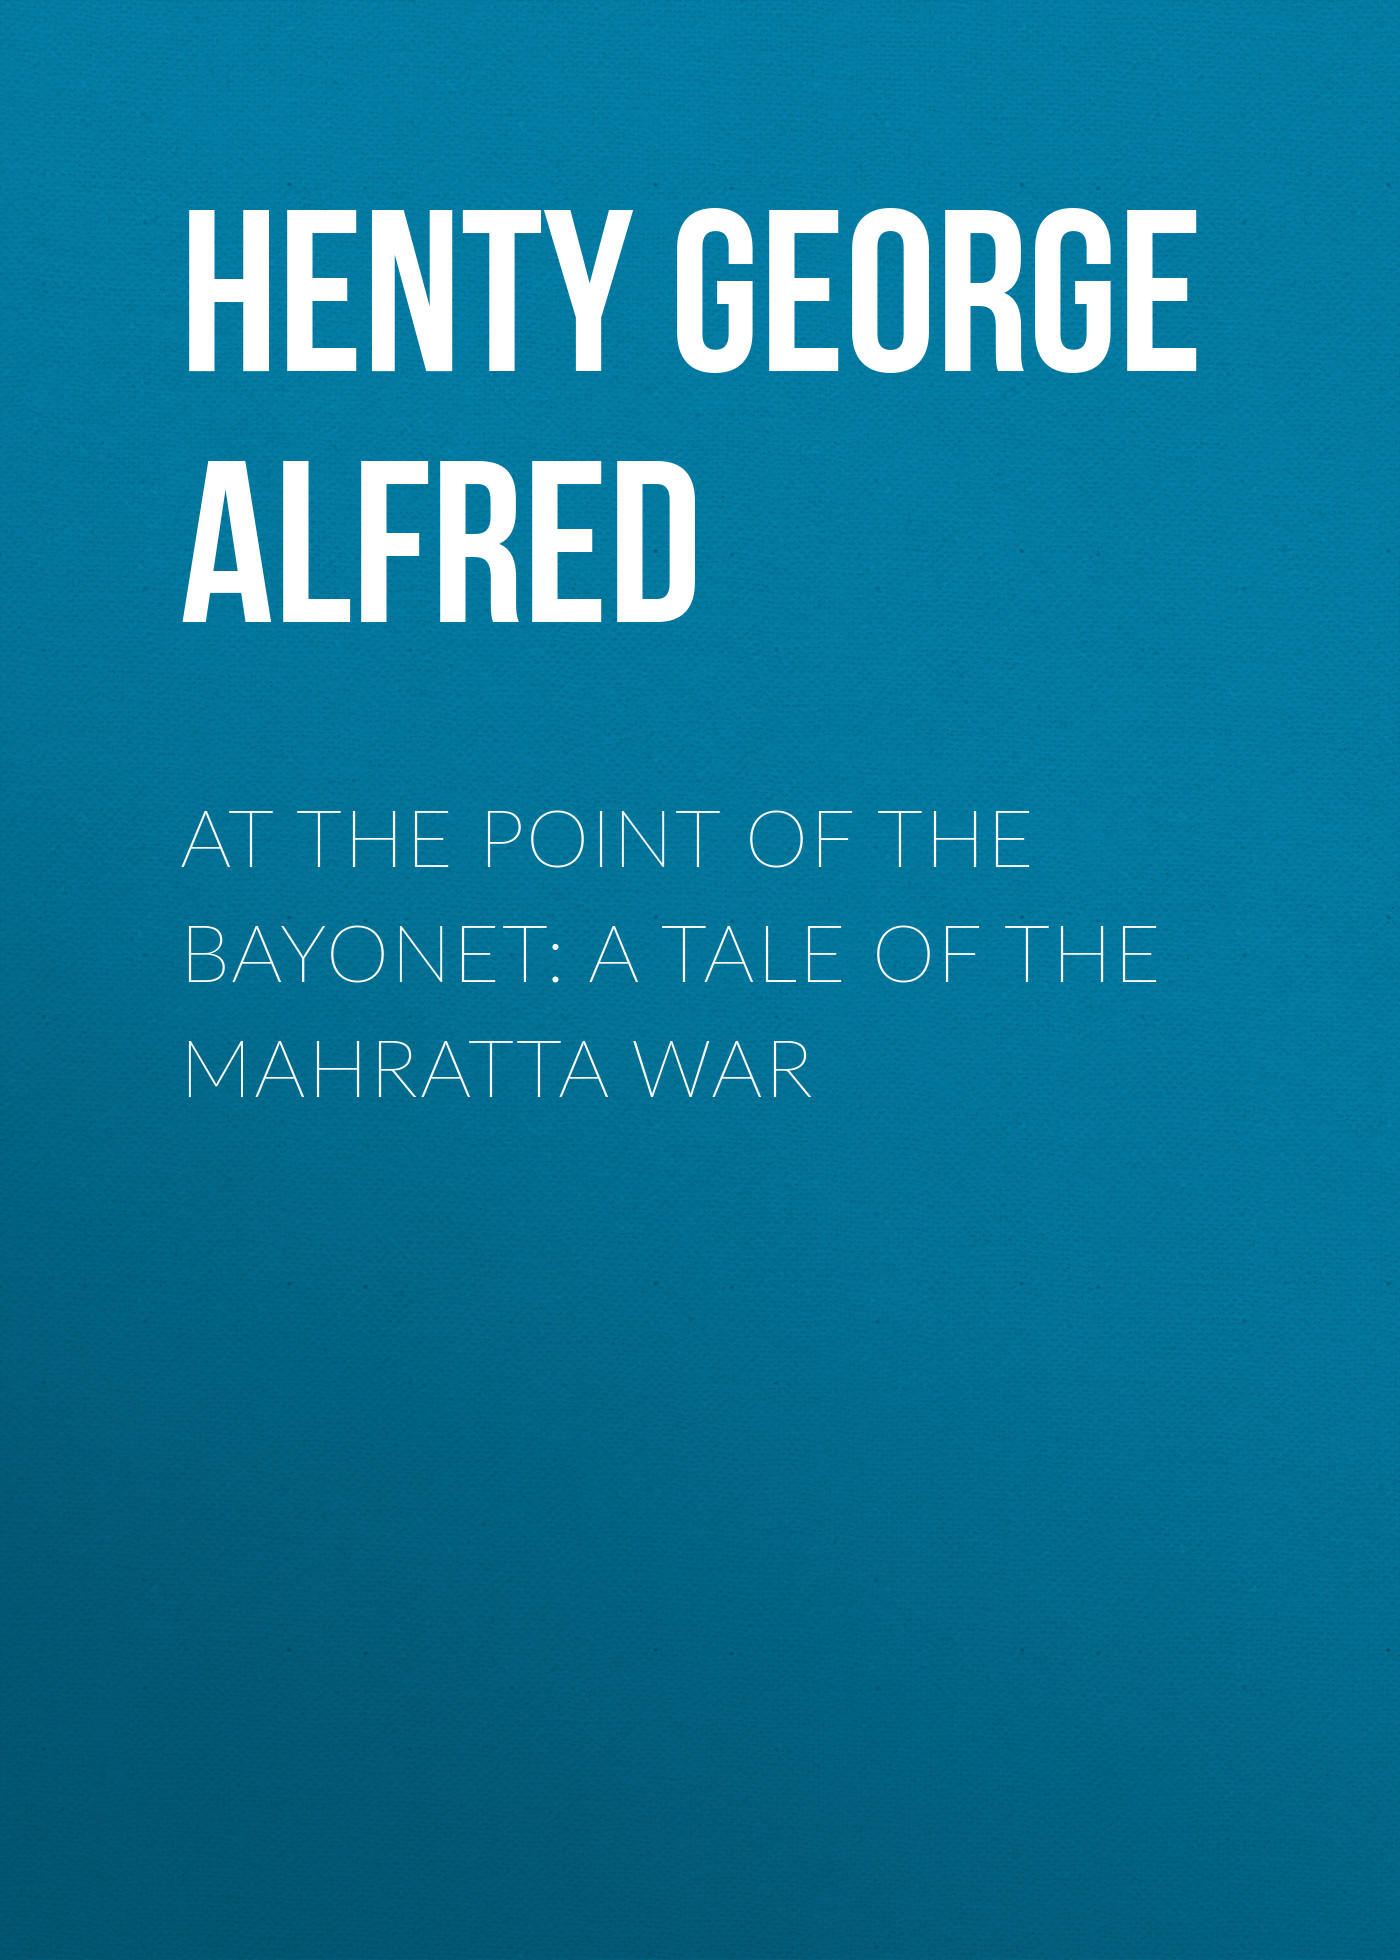 Henty George Alfred At the Point of the Bayonet: A Tale of the Mahratta War george alfred henty with lee in virginia a story of the american civil war